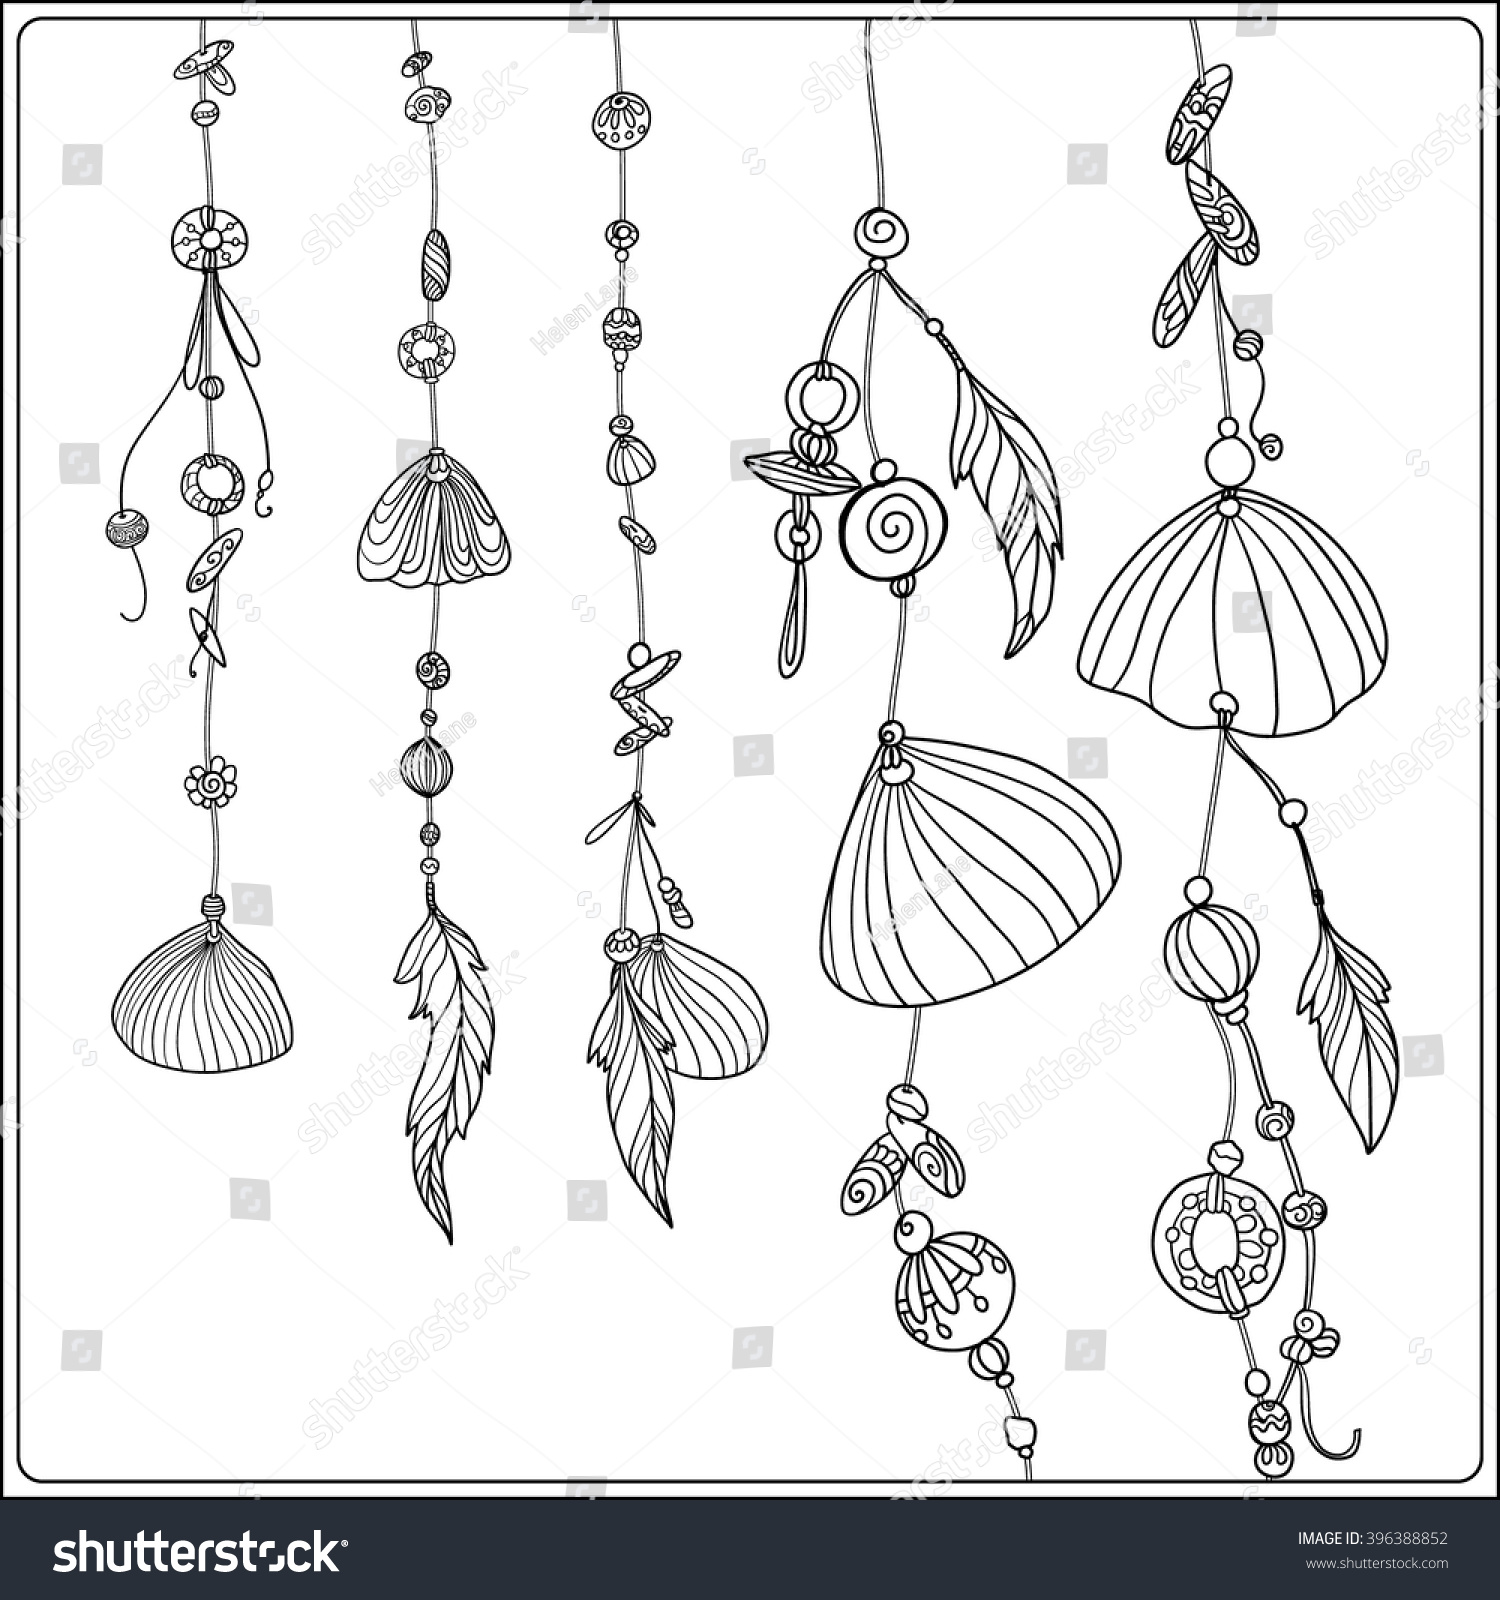 Shell Adult Coloring Page